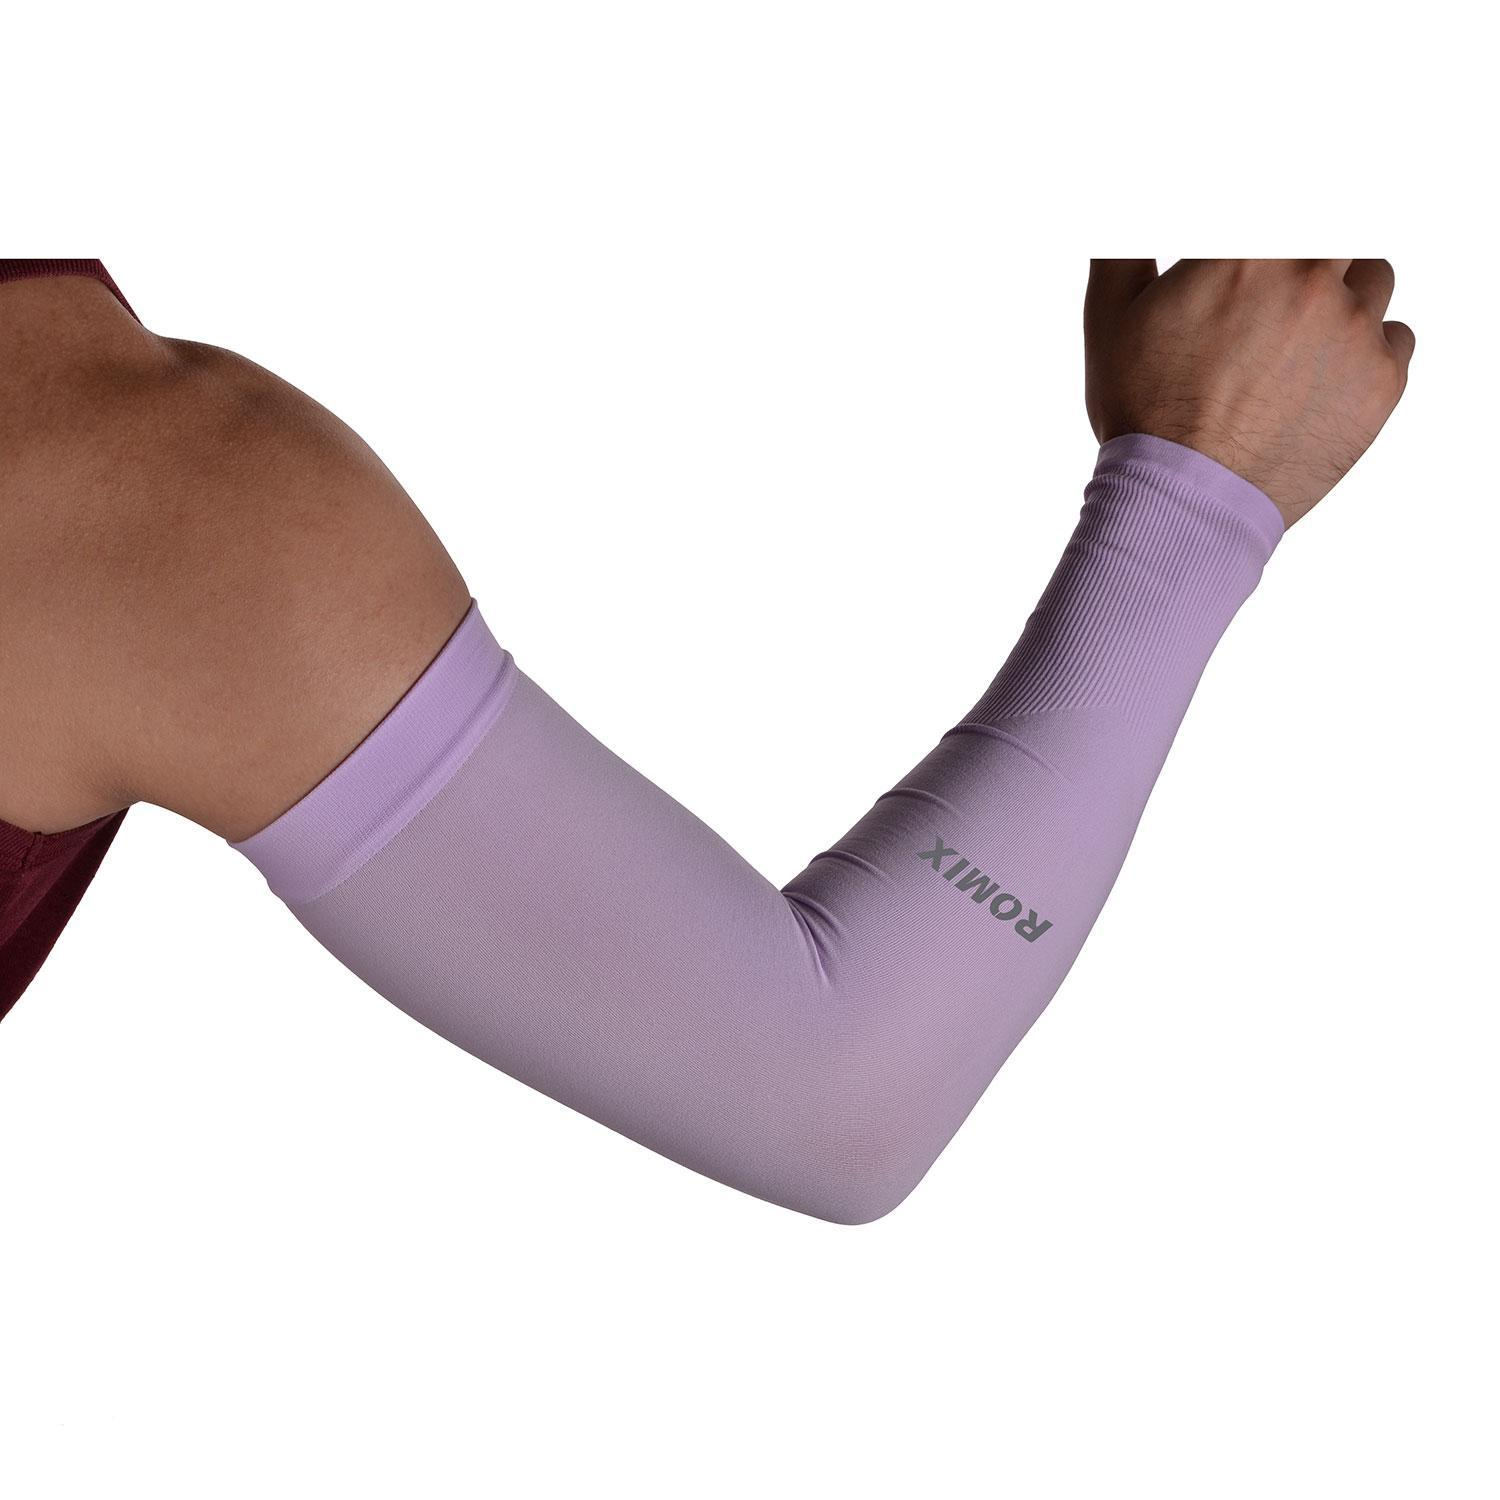 184134b8c6 niceEshop 1 Pair Silk UV-Protection Unisex Cooling Arm Sleeves For Outdoor  Sports (Driving